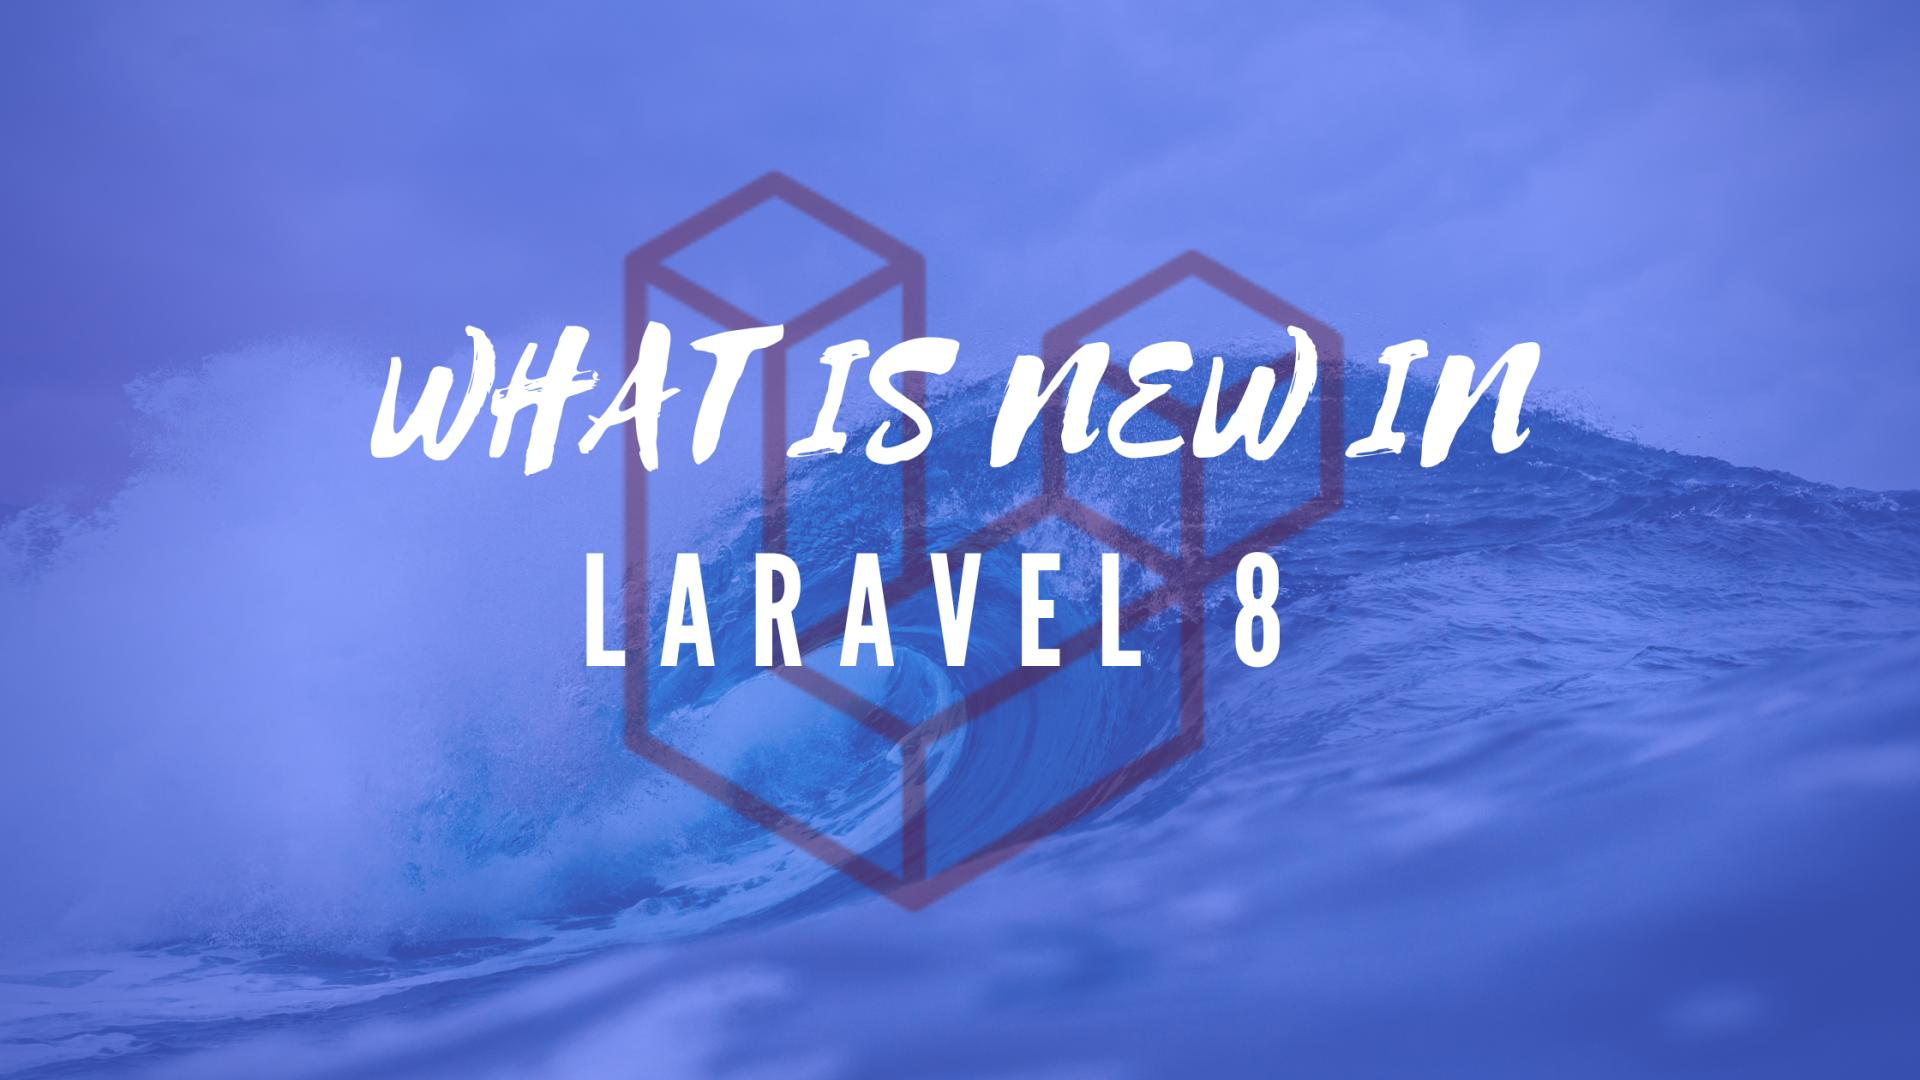 What is new in Laravel 8?